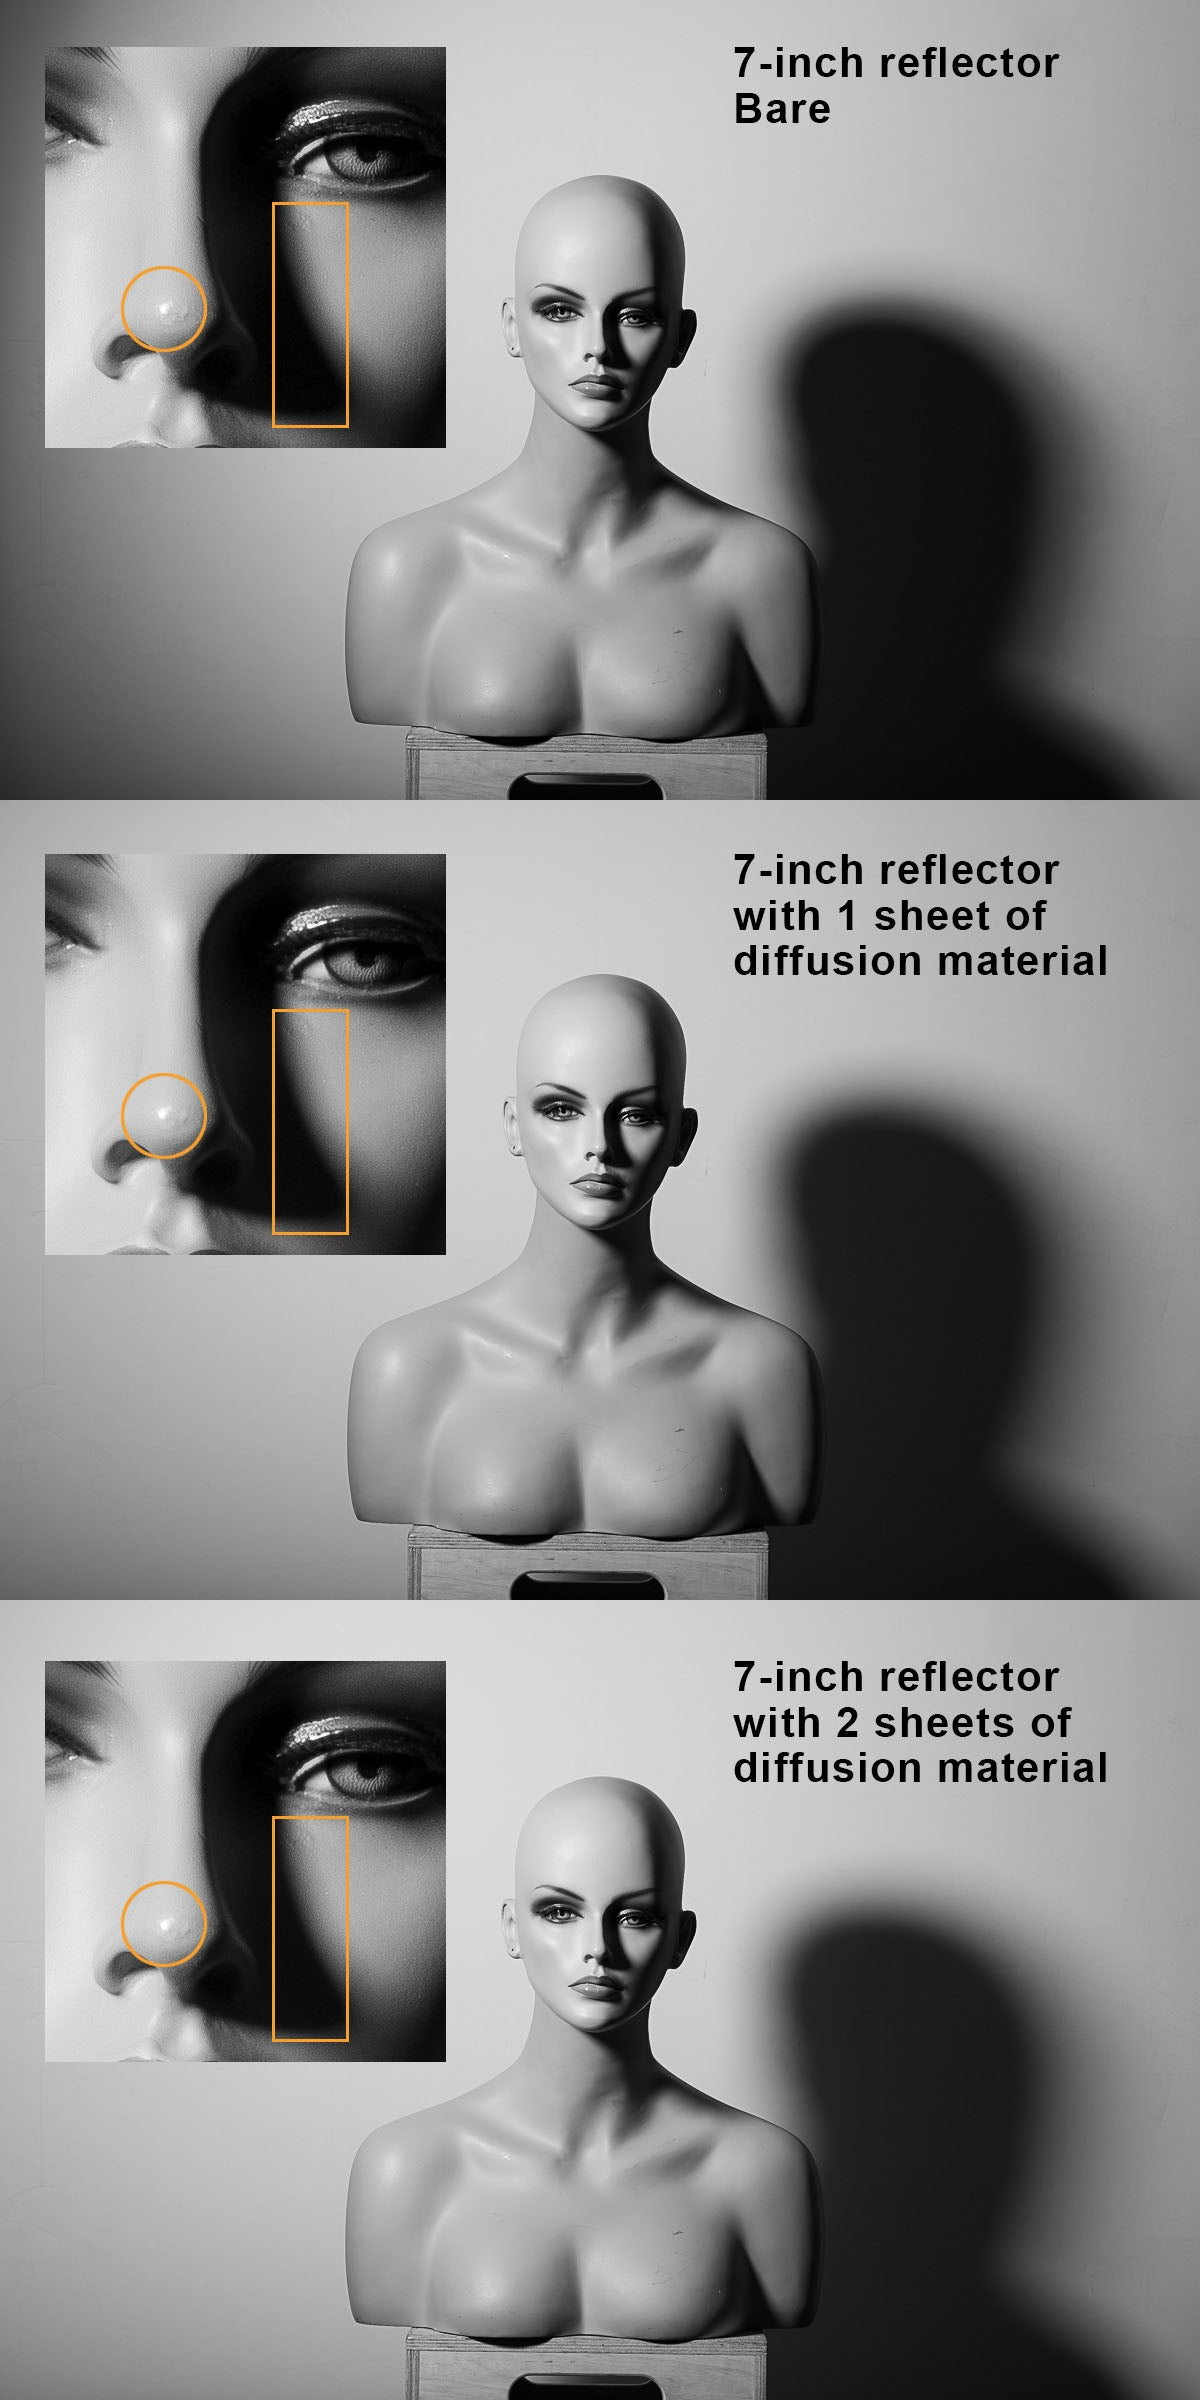 diffusion on a 7-inch reflector